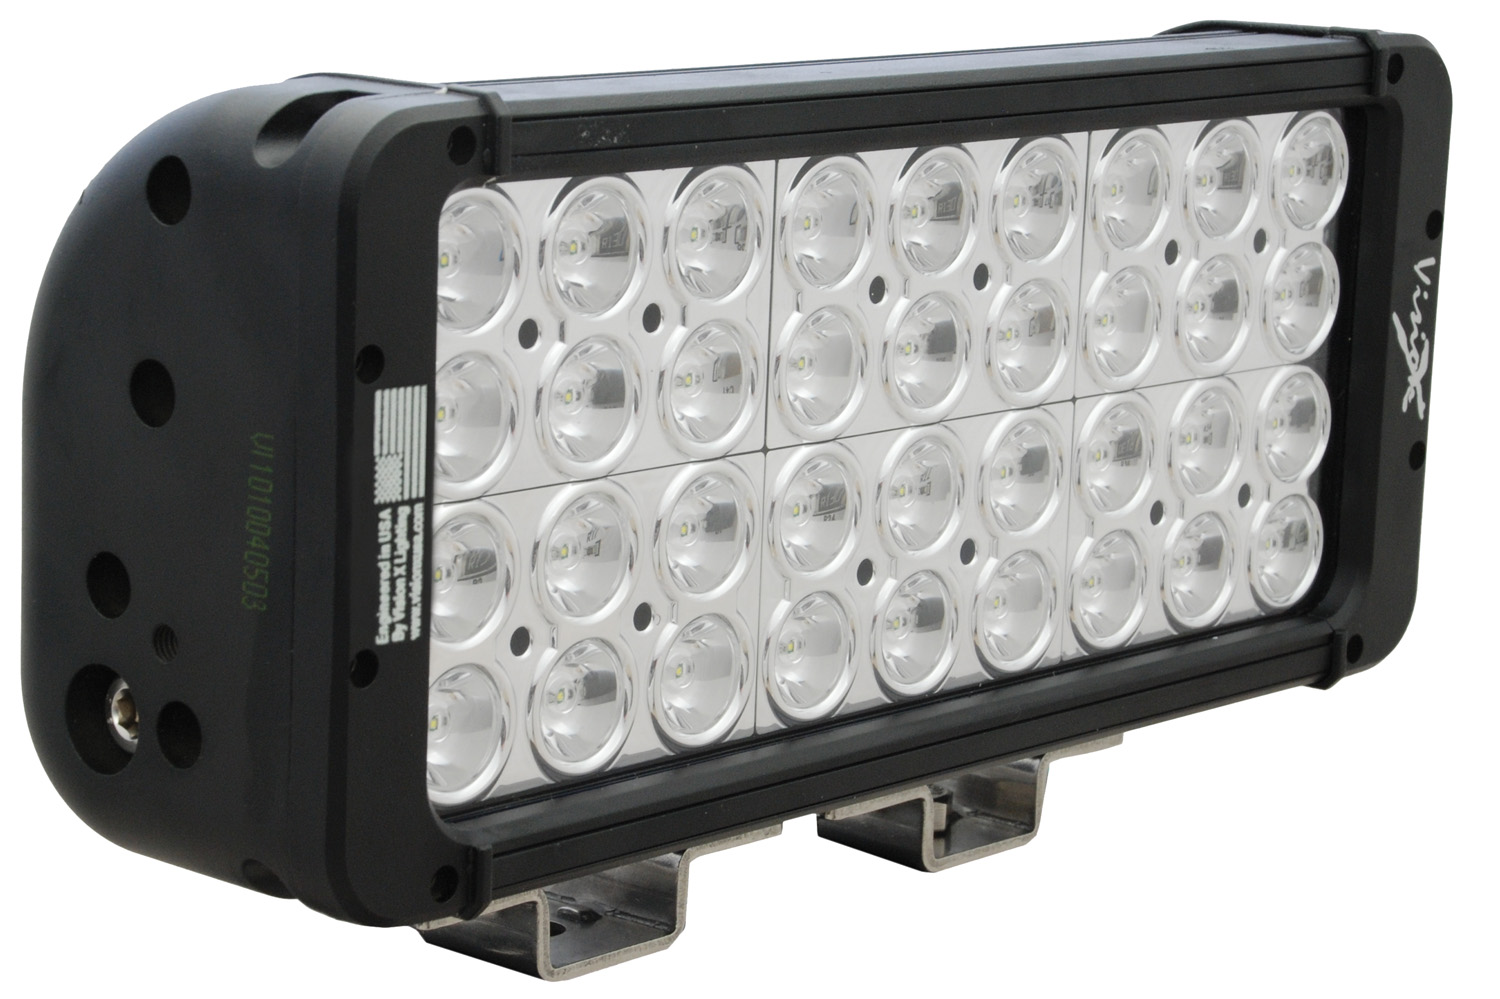 "11"" XMITTER PRIME DOUBLE STACK LED BAR BLACK THIRTY SIX 3-WATT LED'S 10 DEGREE NARROW BEAM"